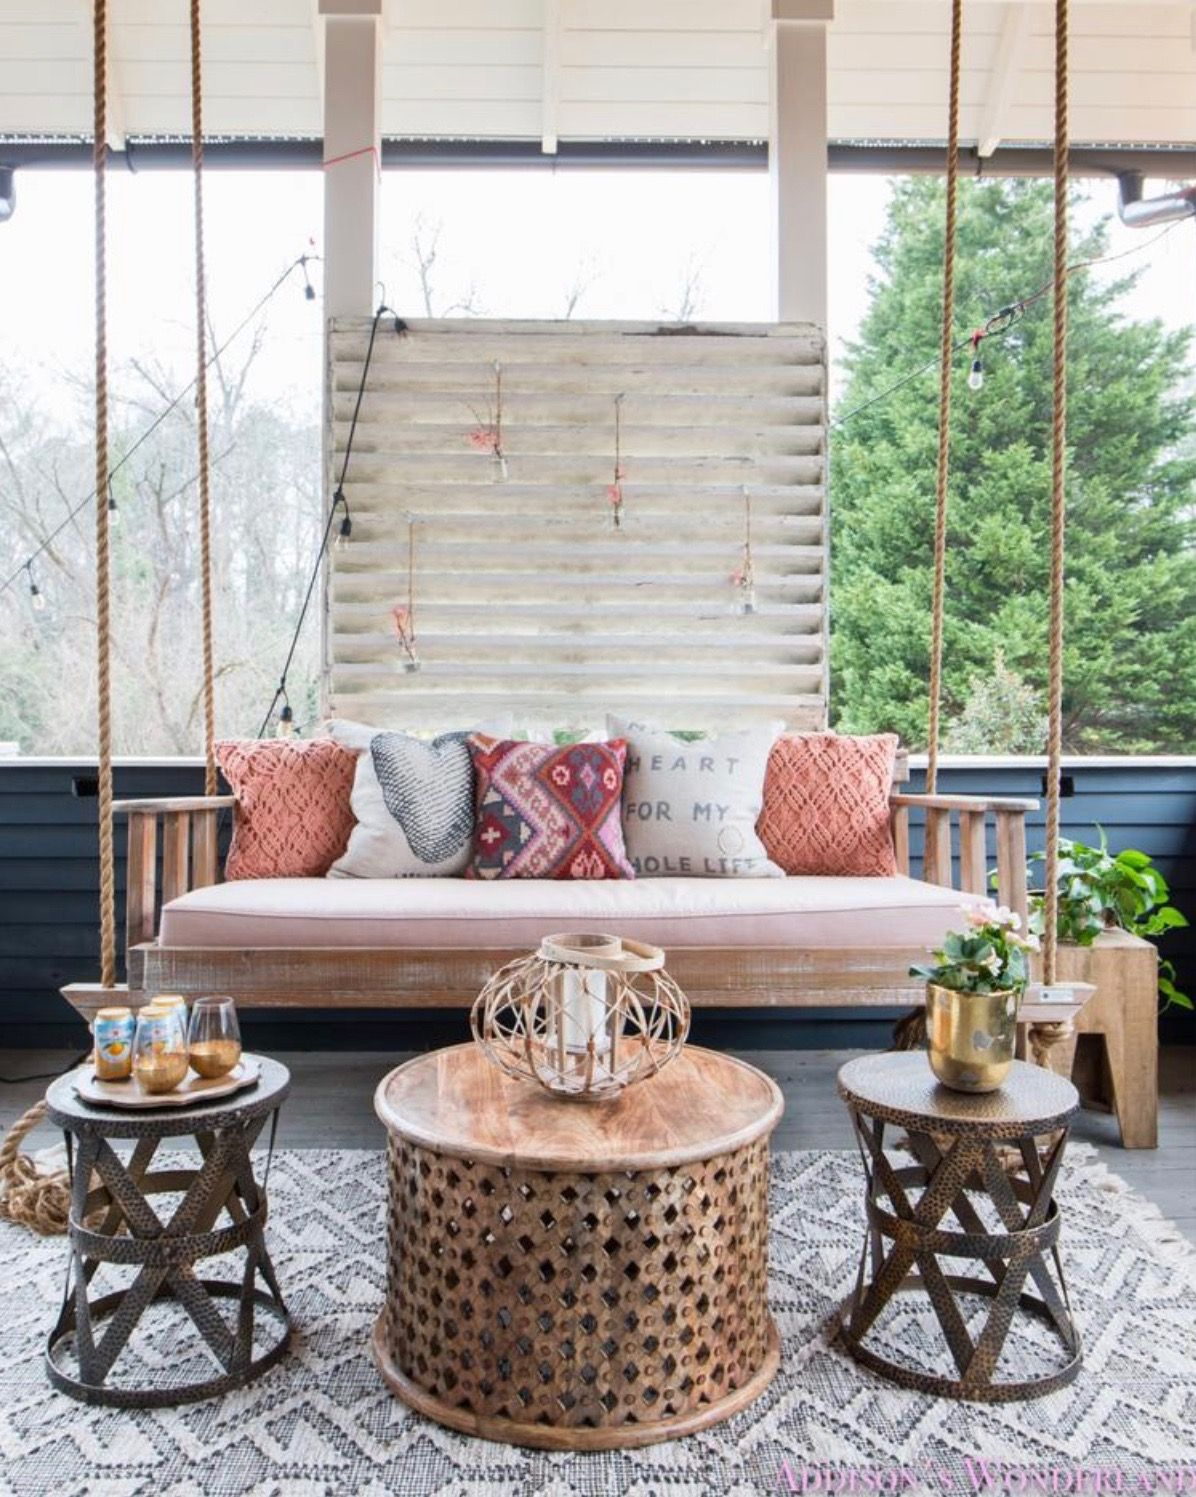 Pin by LACIE☆ on Back Yard Hanging daybed, Porch swing